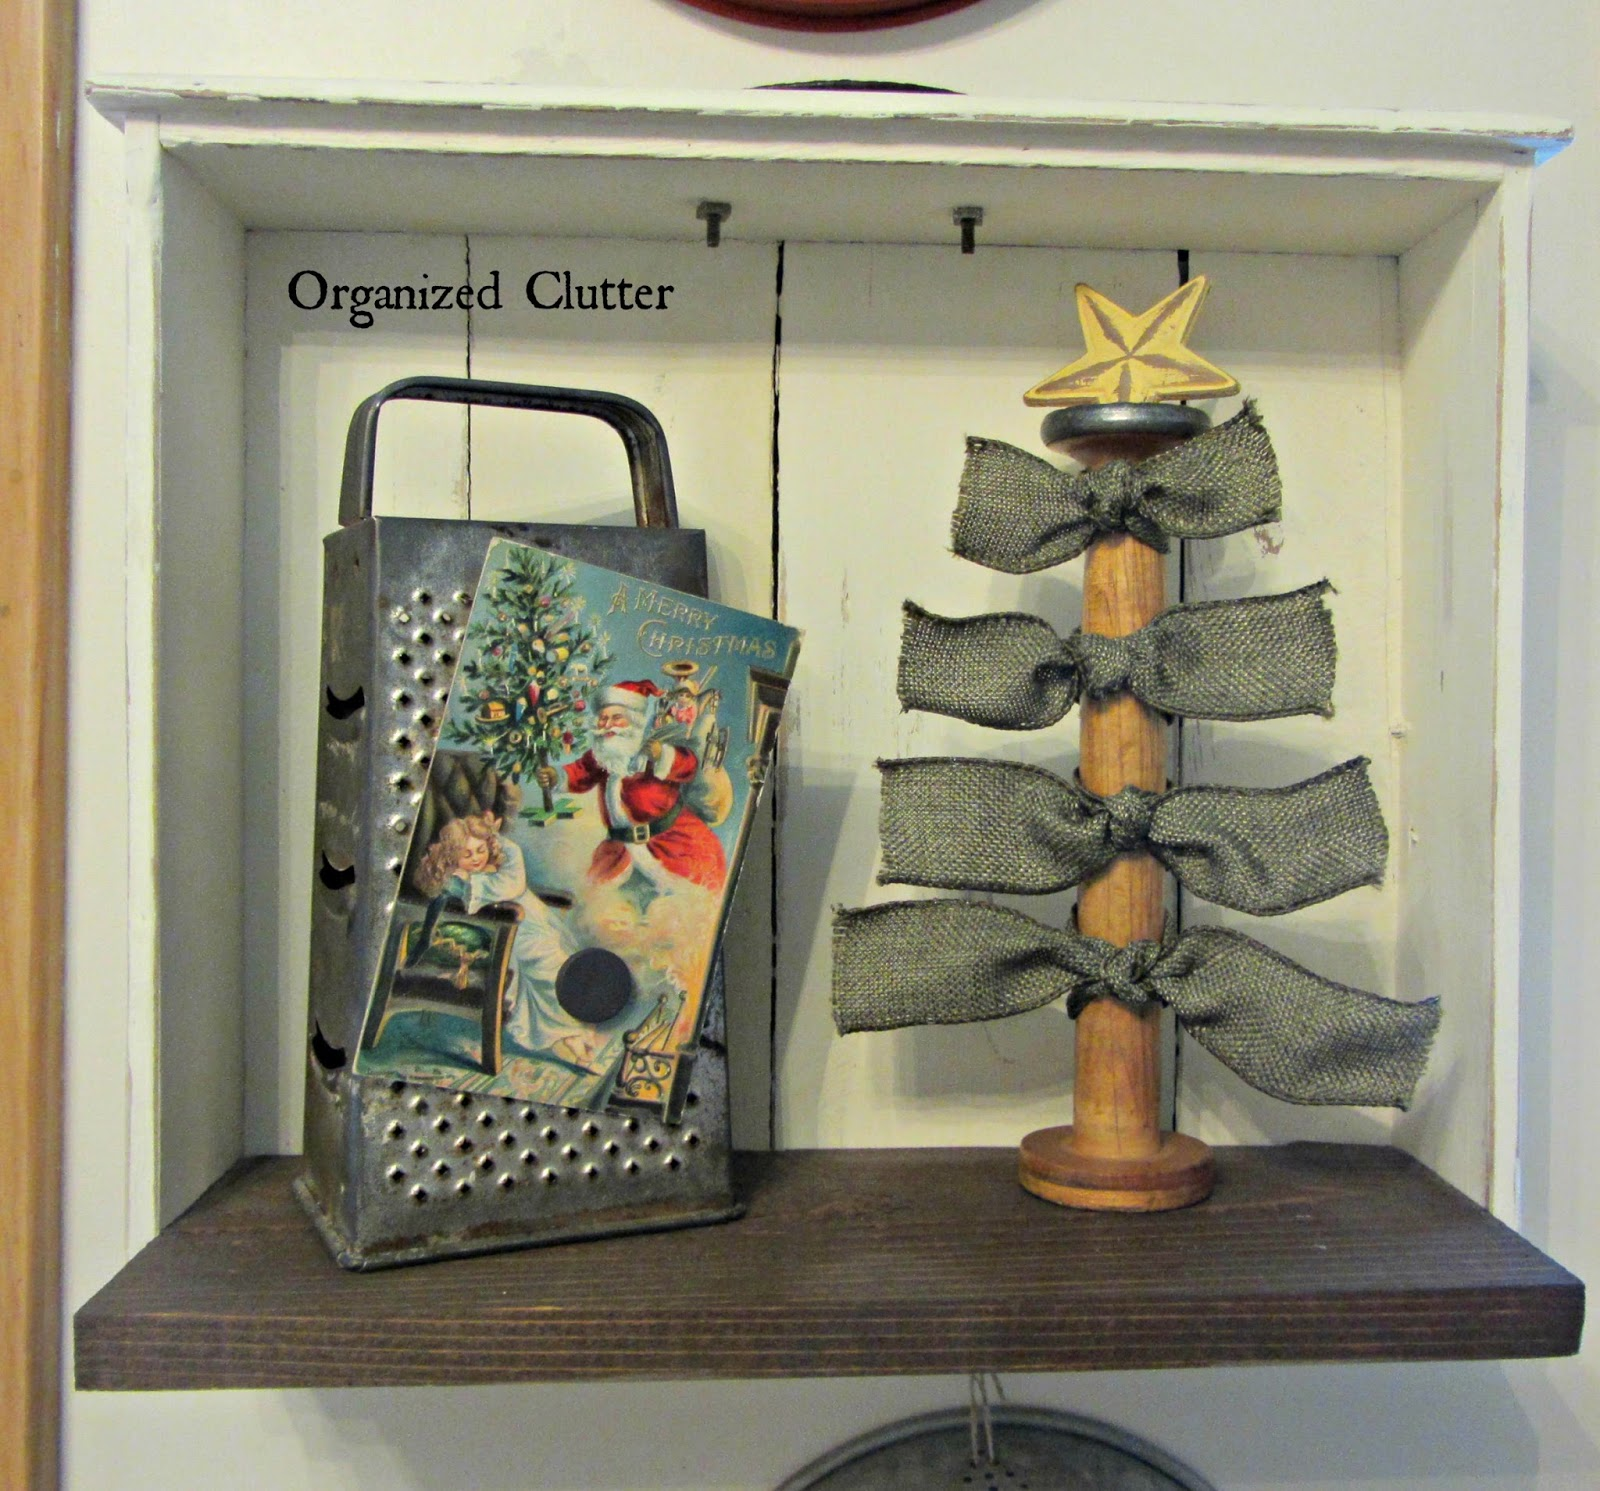 Ribbon & Spool Christmas Tree www.organizedclutterqueen.blogspot.com